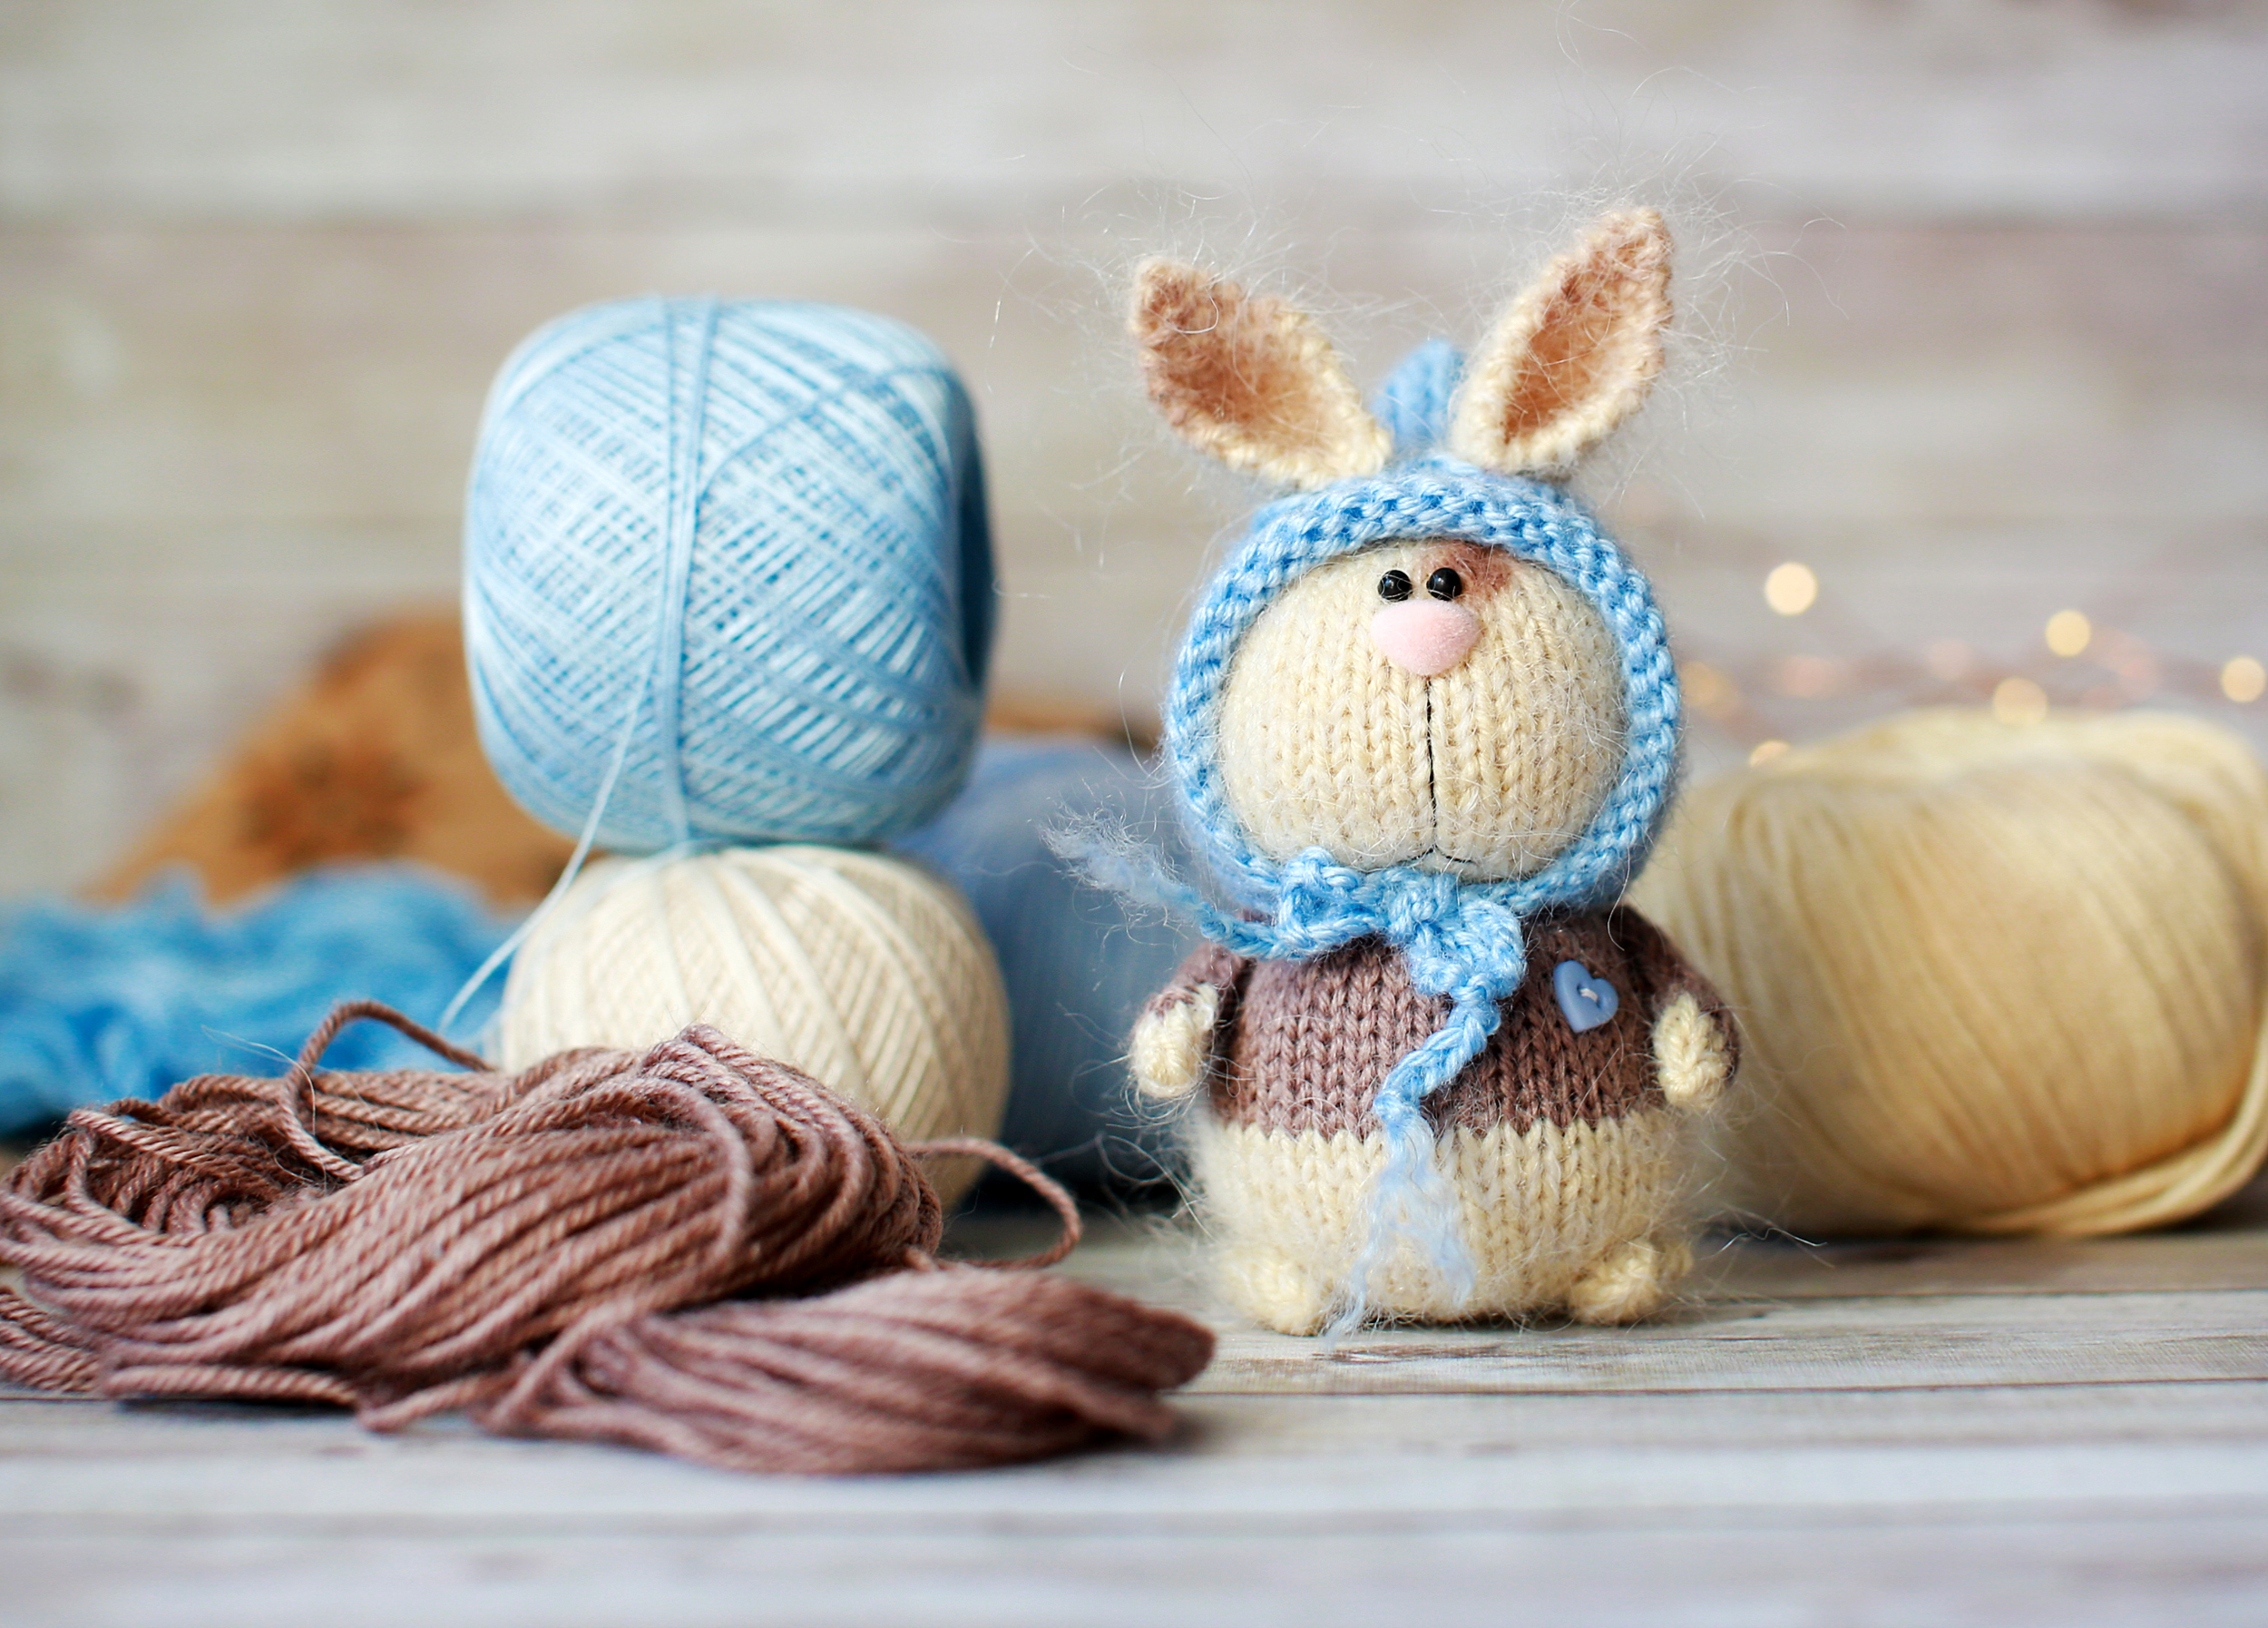 When I stumbled upon an adorable crochet peeps pattern I knew that I absolutely had to share. Keep reading for these super cute (and free!) crochet peeps patterns. You'll love all of the things you can create!